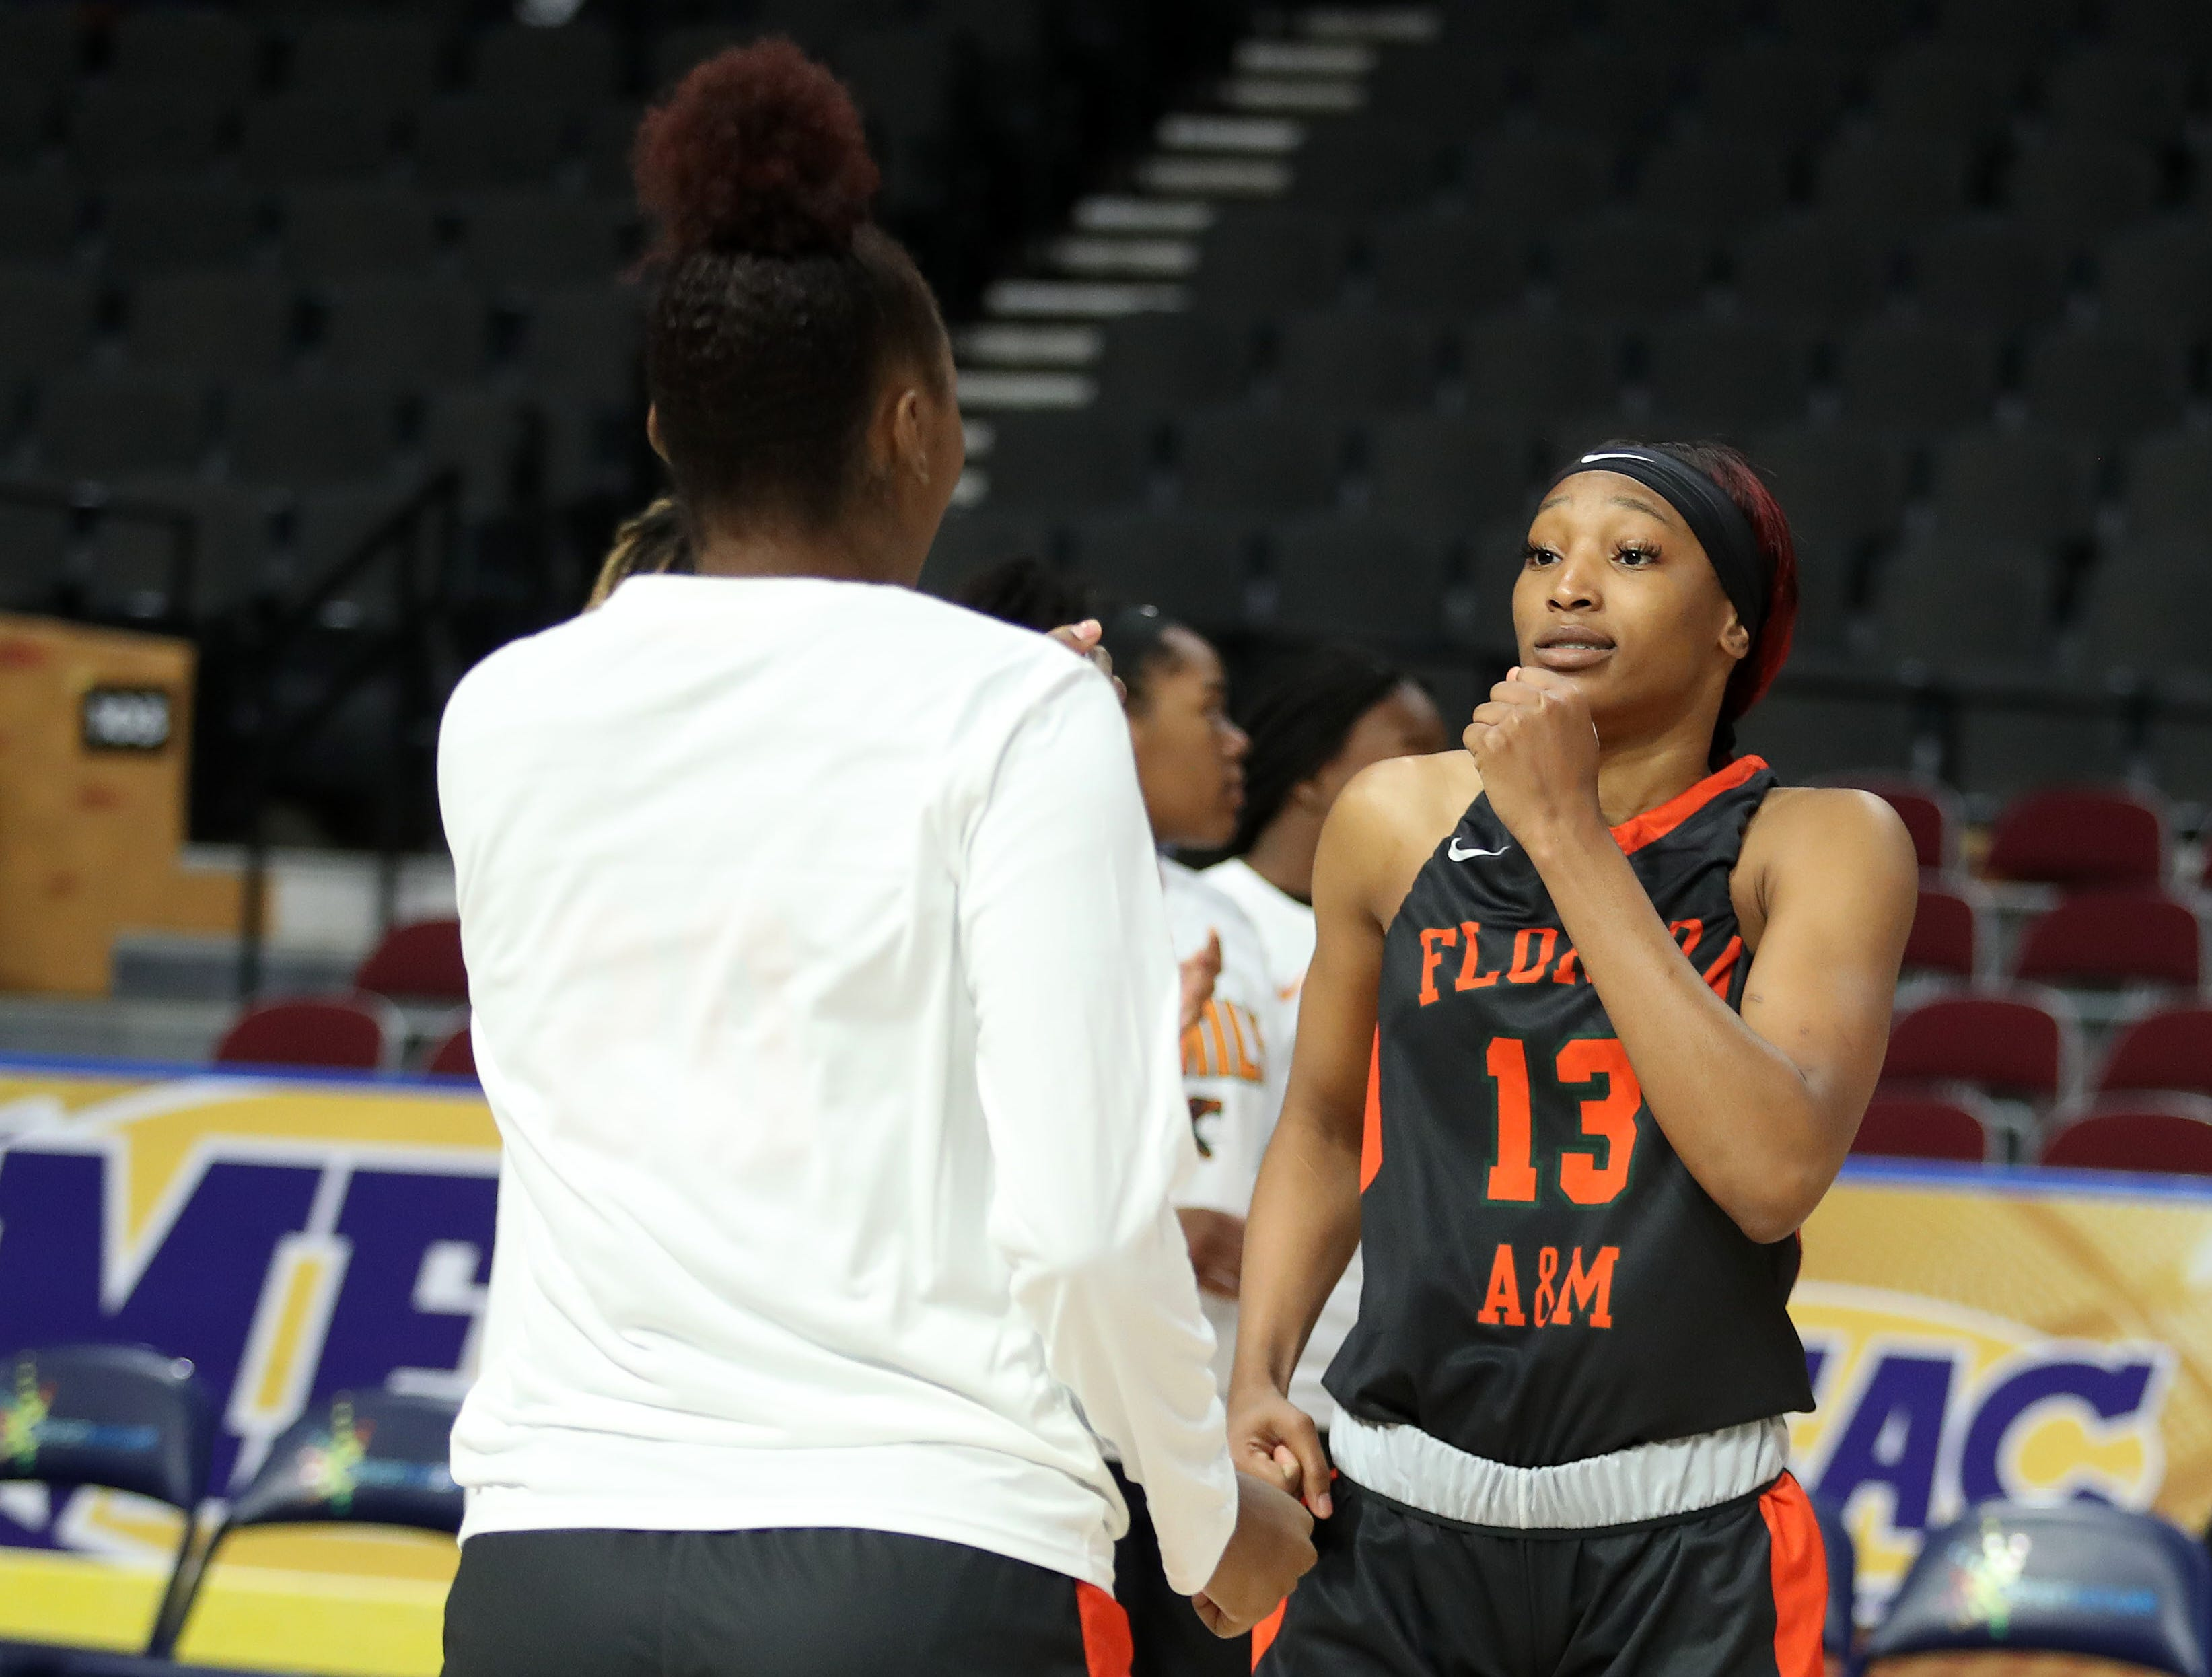 FAMU forward Dy'Manee Royal dances during pregame introductions at the MEAC tournament on Monday, March 11, 2019.